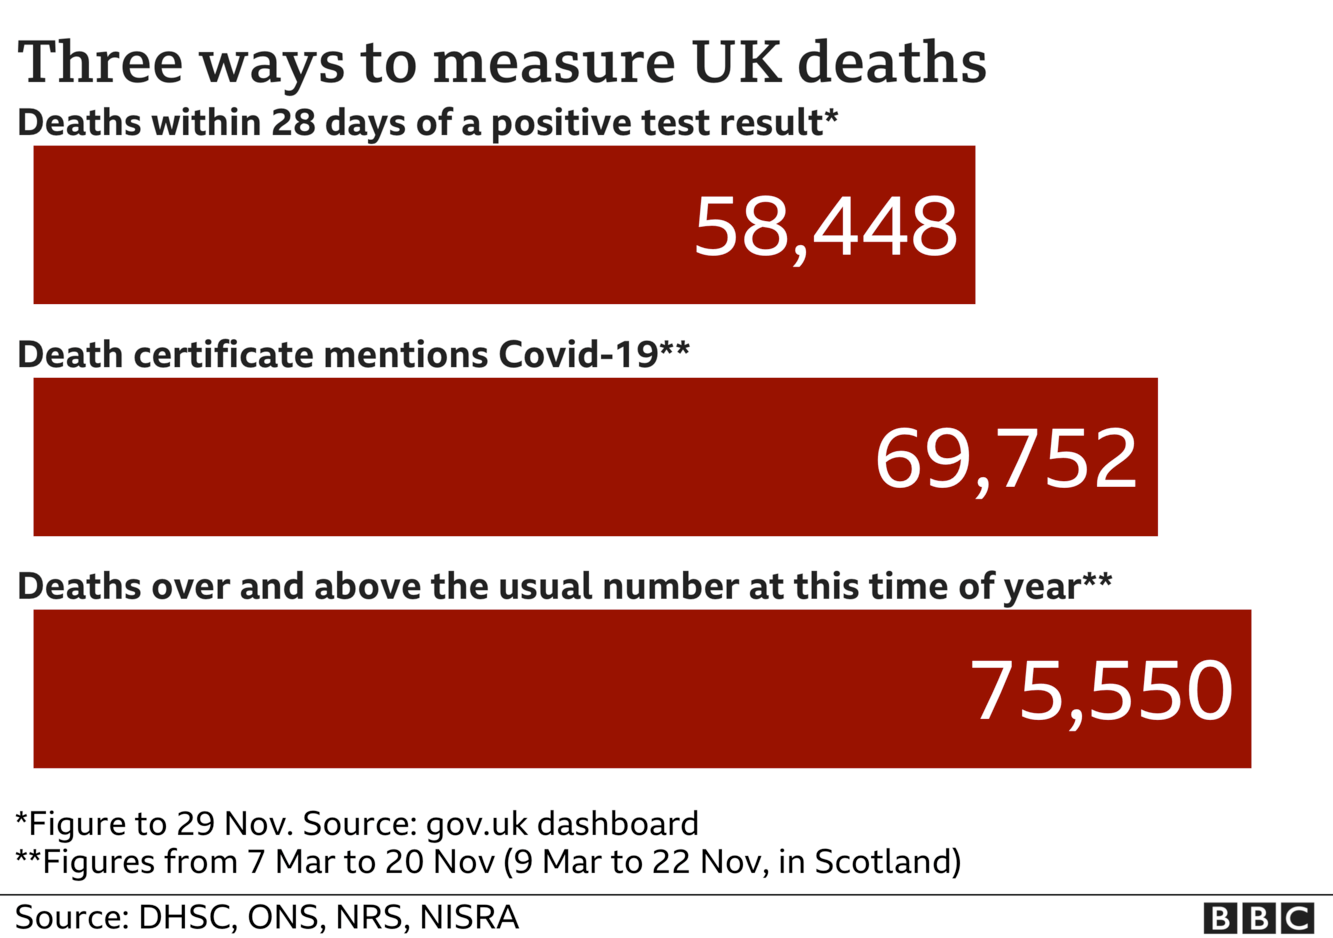 Chart shows three ways of measuring coronavirus deaths - government statistics count everyone who dies within 28 days of a positive test, the total is now 58,448; ONS stats include everyone where coronavirus was mentioned on the death certificate and that total is now 69,752, the final total includes all excess deaths over and above the usual number and that is now 75,550. Updated 1 Dec.